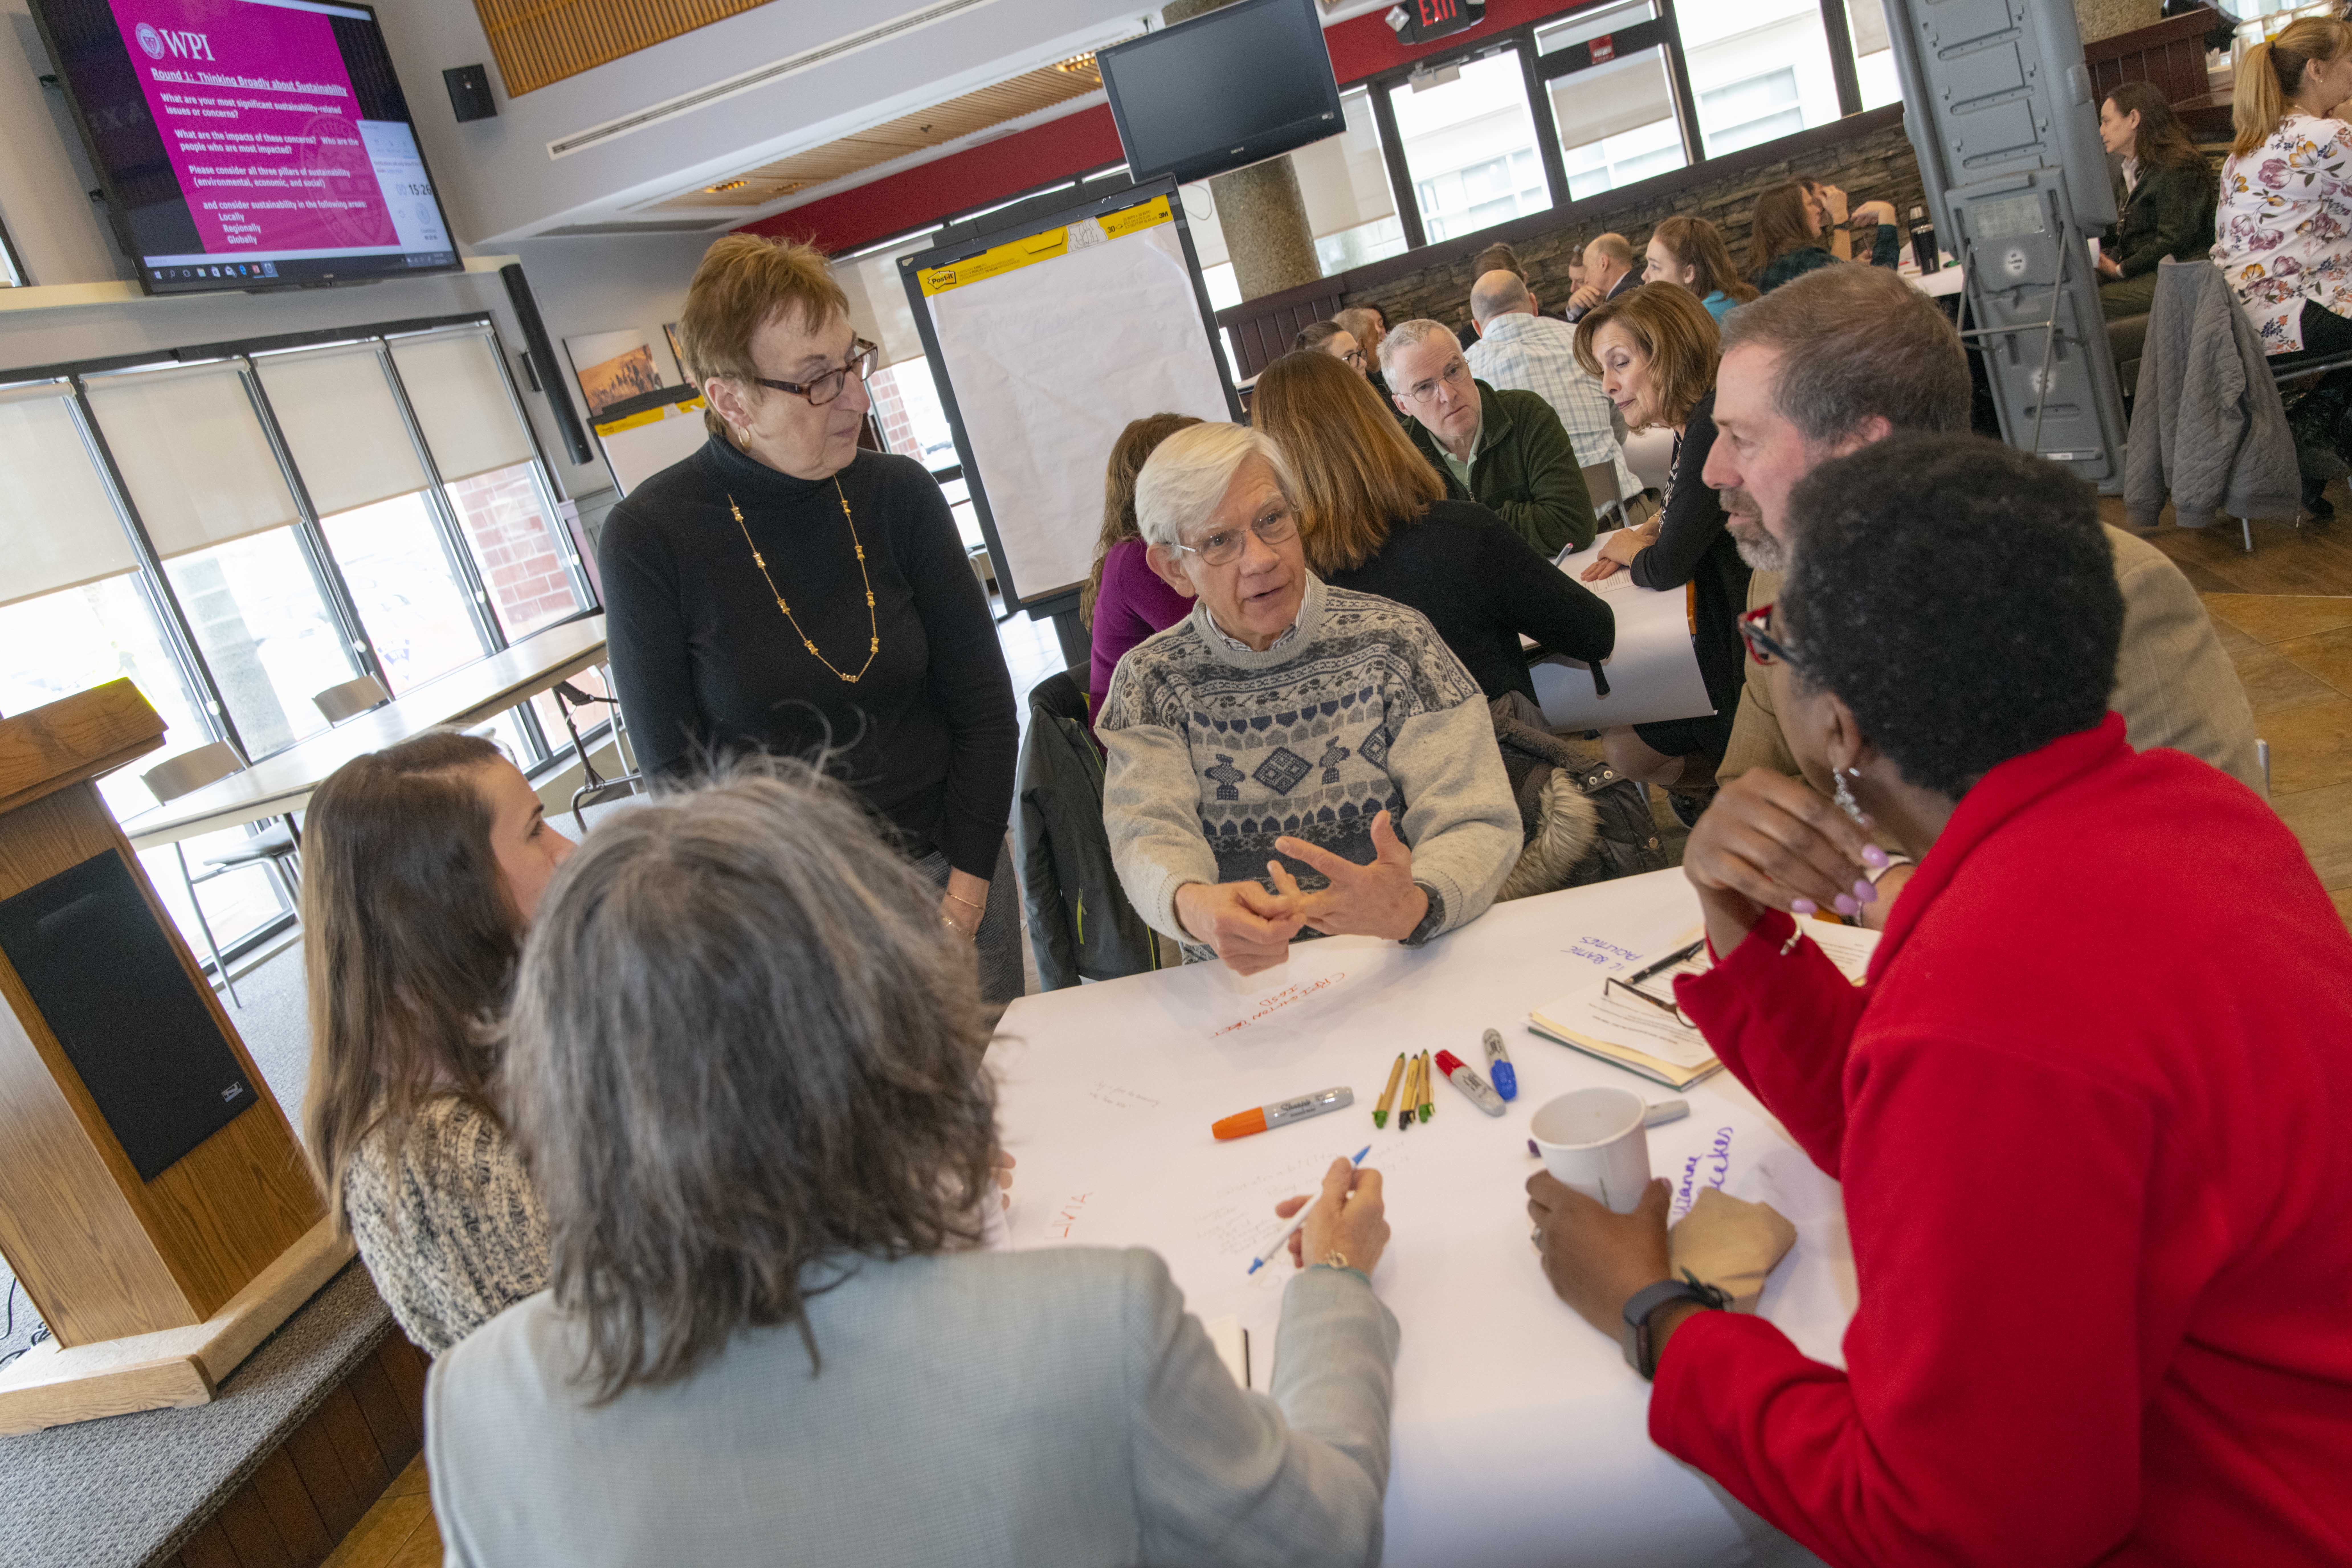 sustainability plan meeting of several people at a table